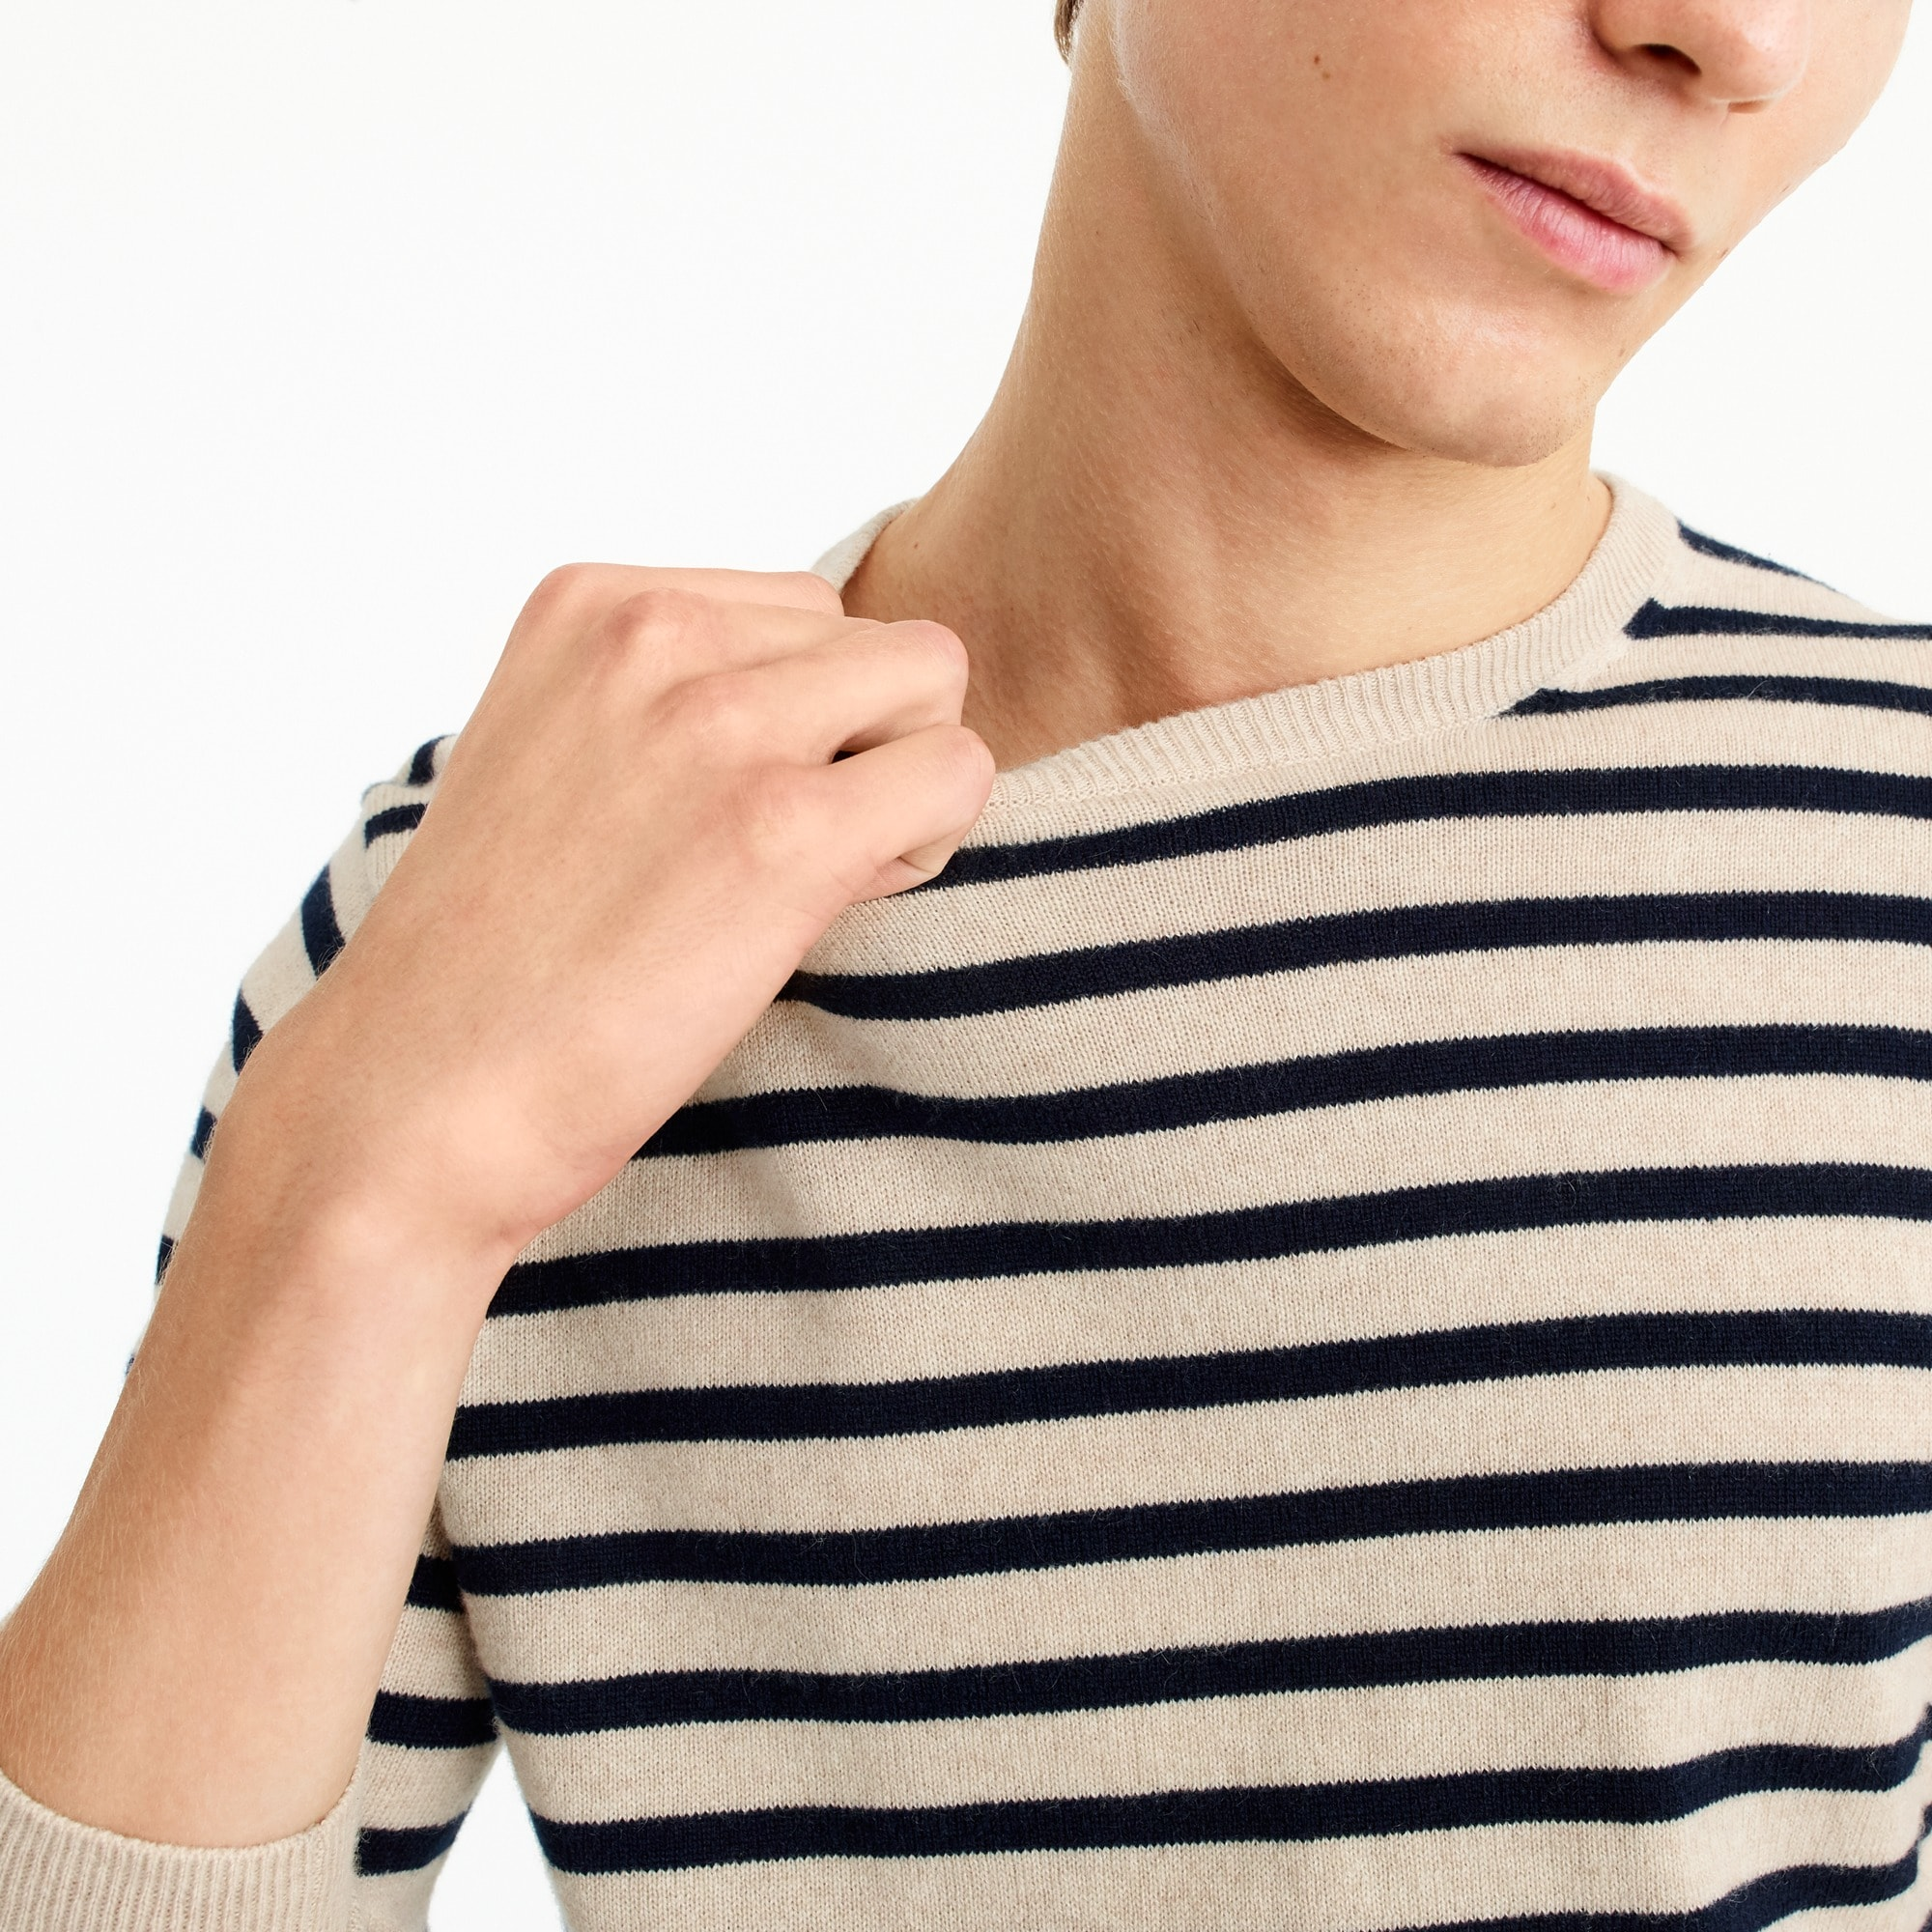 Image 4 for Everyday cashmere crewneck sweater in stripe